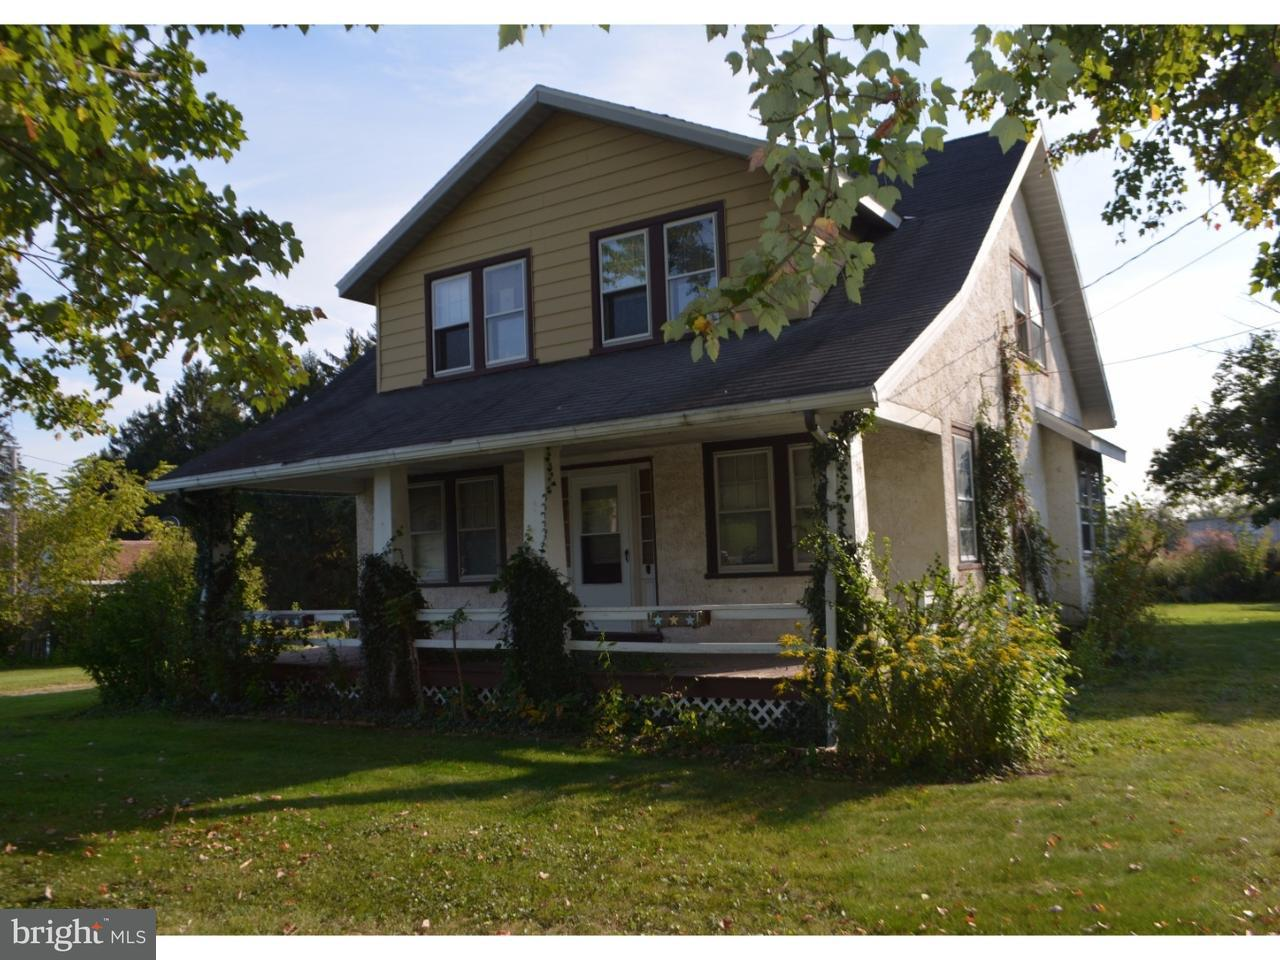 Single Family Home for Rent at 2102 POTTSTOWN PIKE Pottstown, Pennsylvania 19465 United States